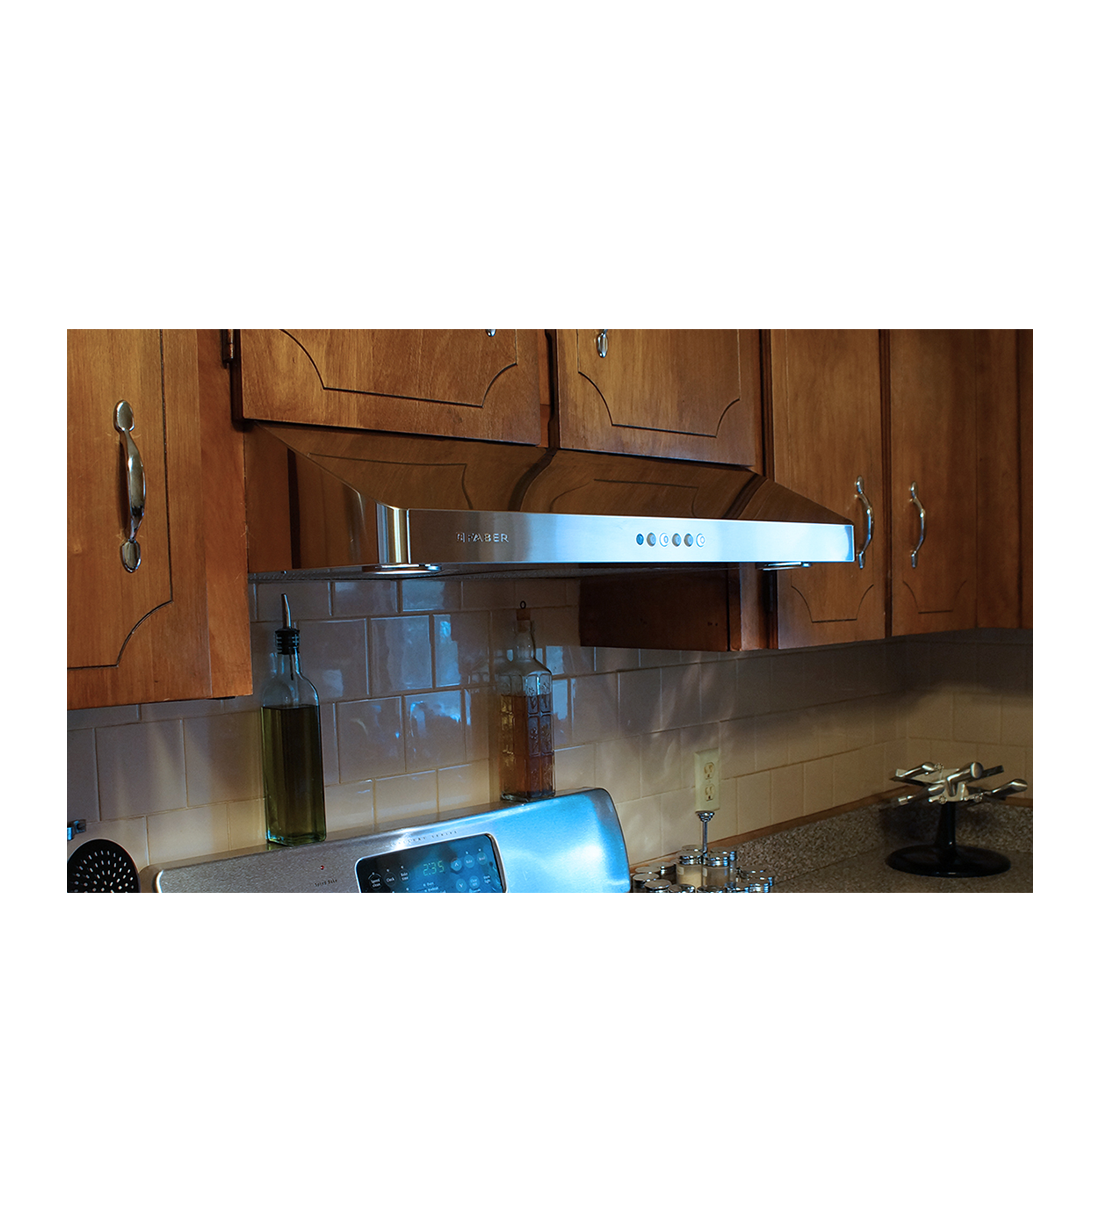 Faber Rangehood 30inch in Stainless Steel color showcased by Corbeil Electro Store